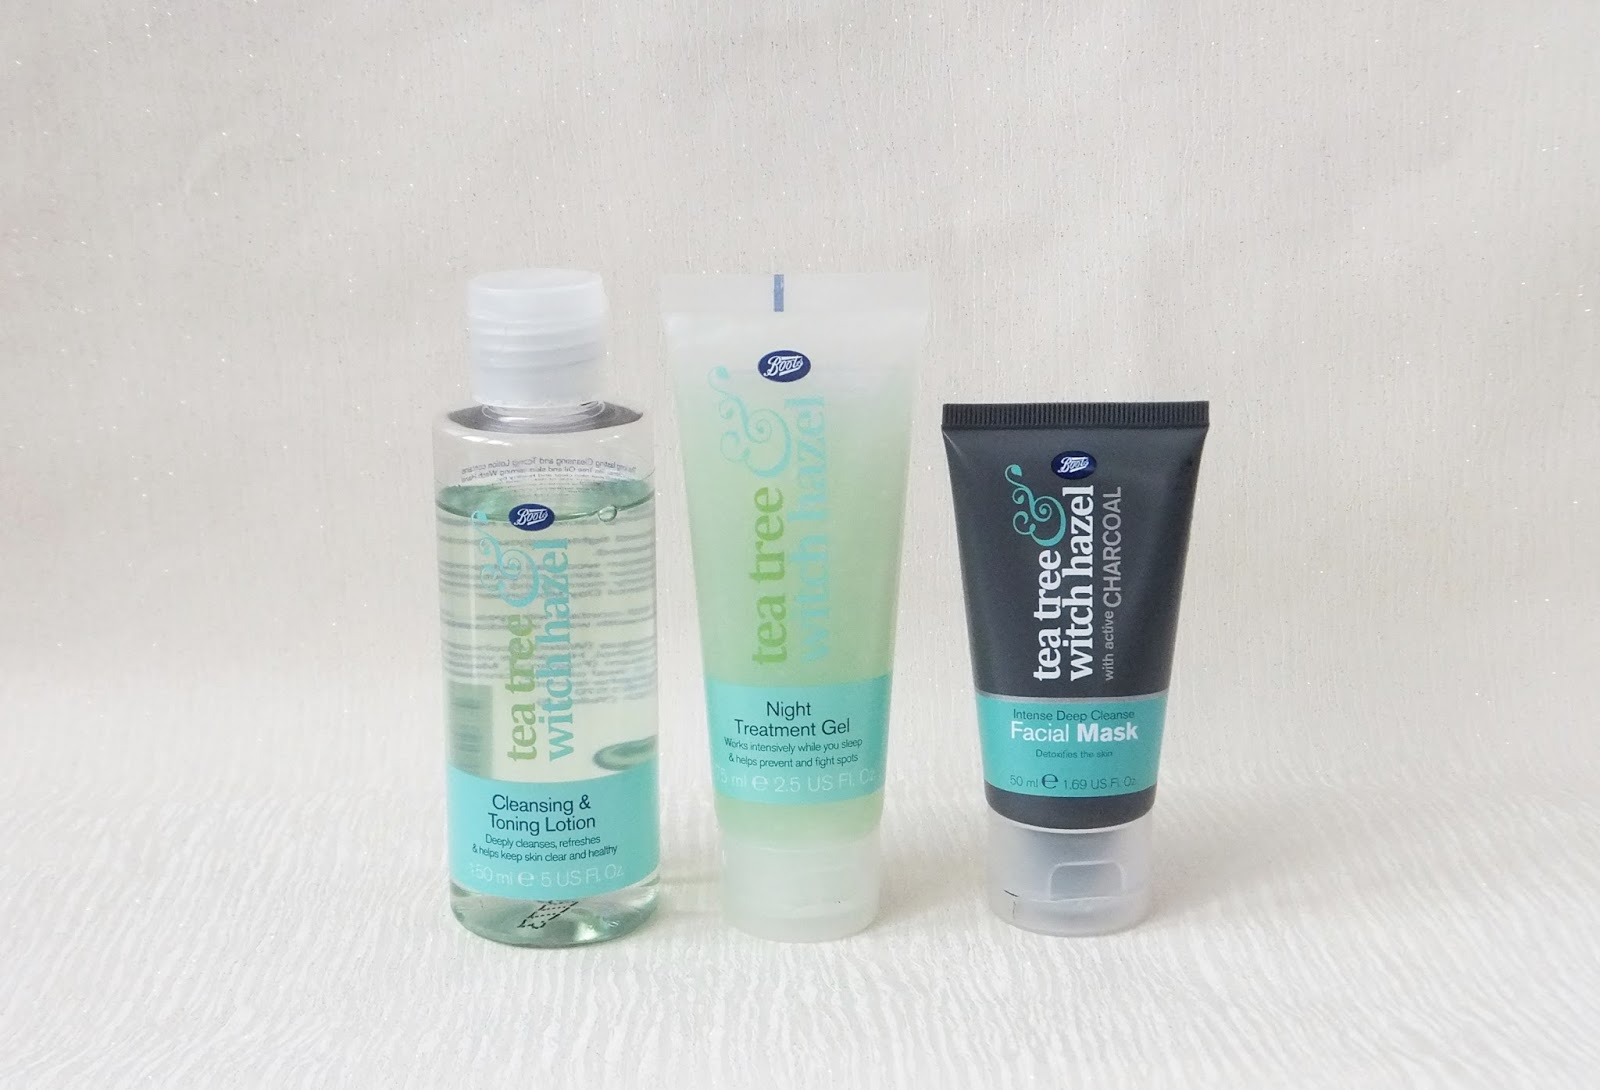 Boots beauty products reviews